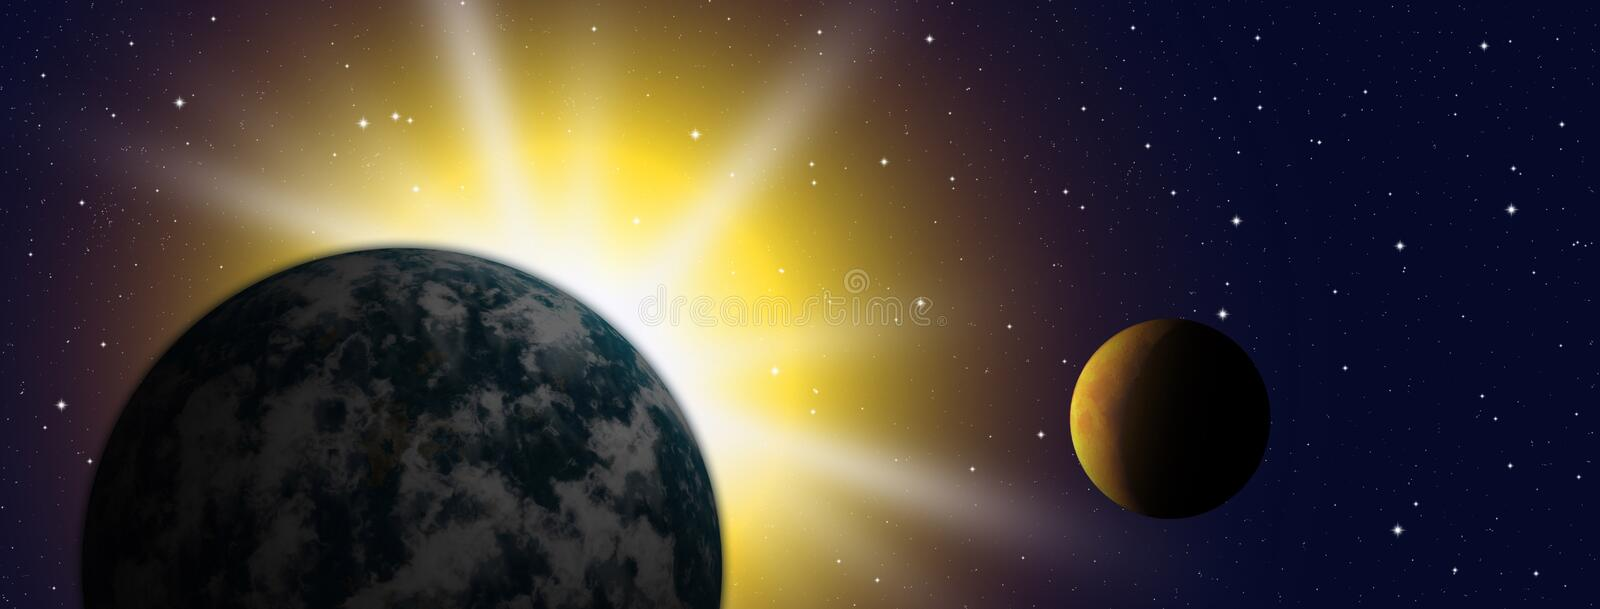 The Planet earth stock illustration